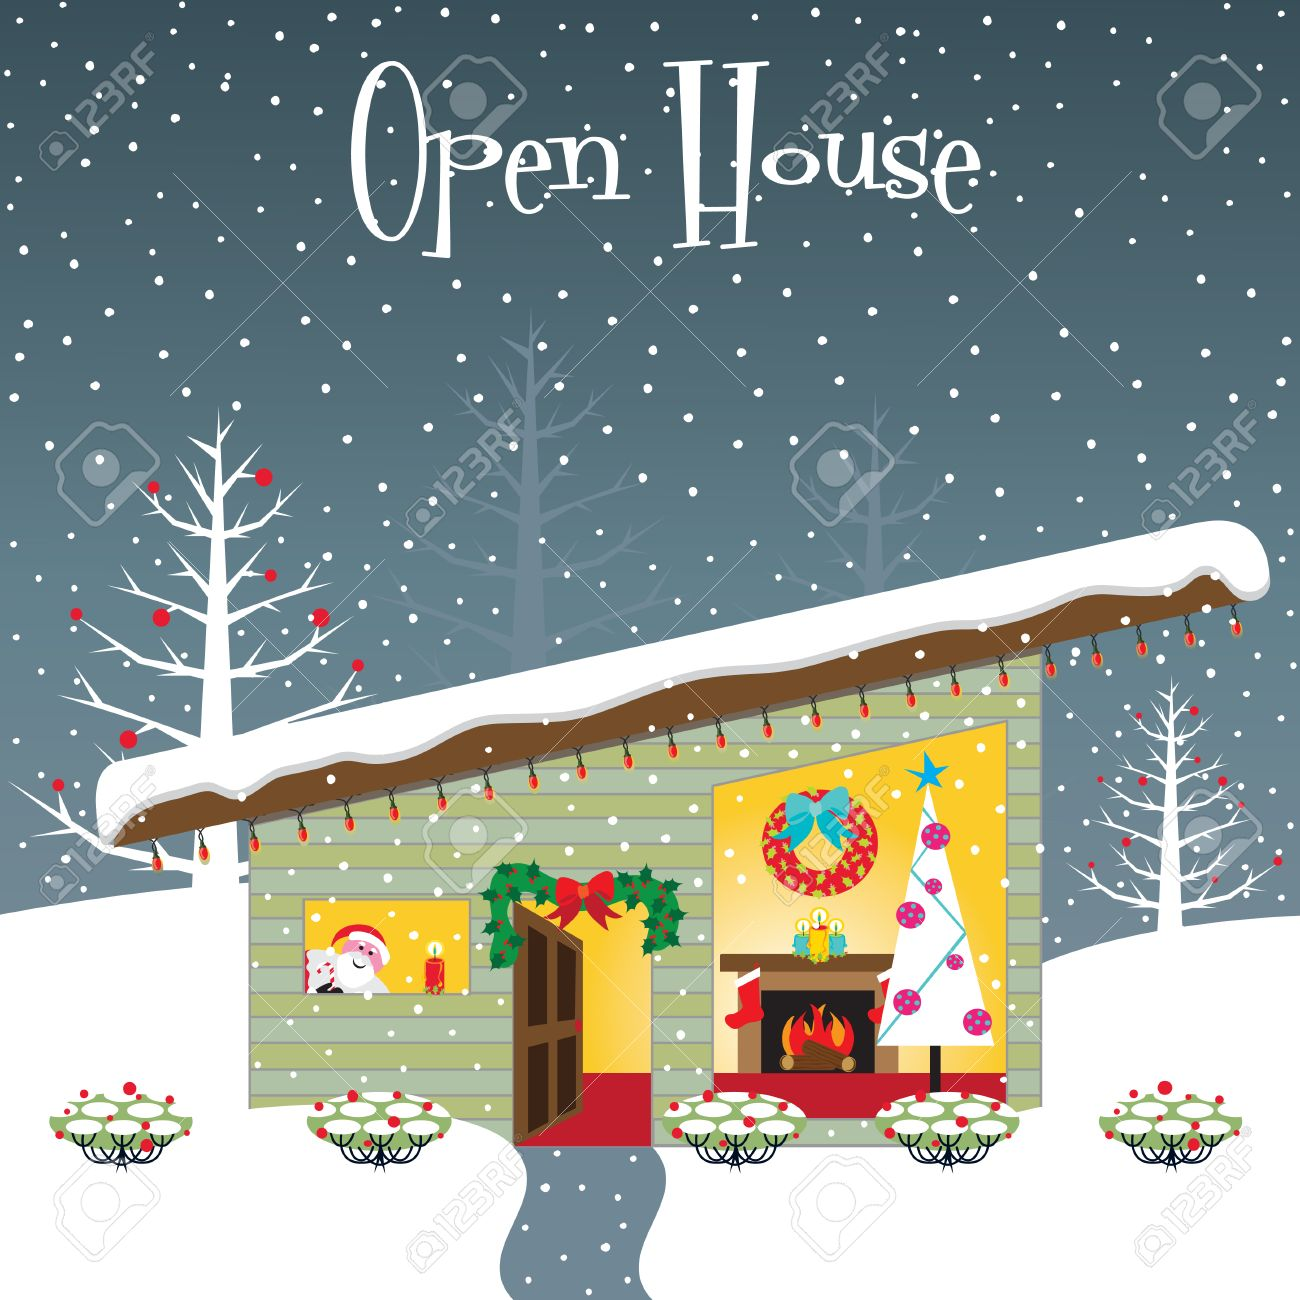 Christmas Open House Party Invitation With Room For Your Copy ...